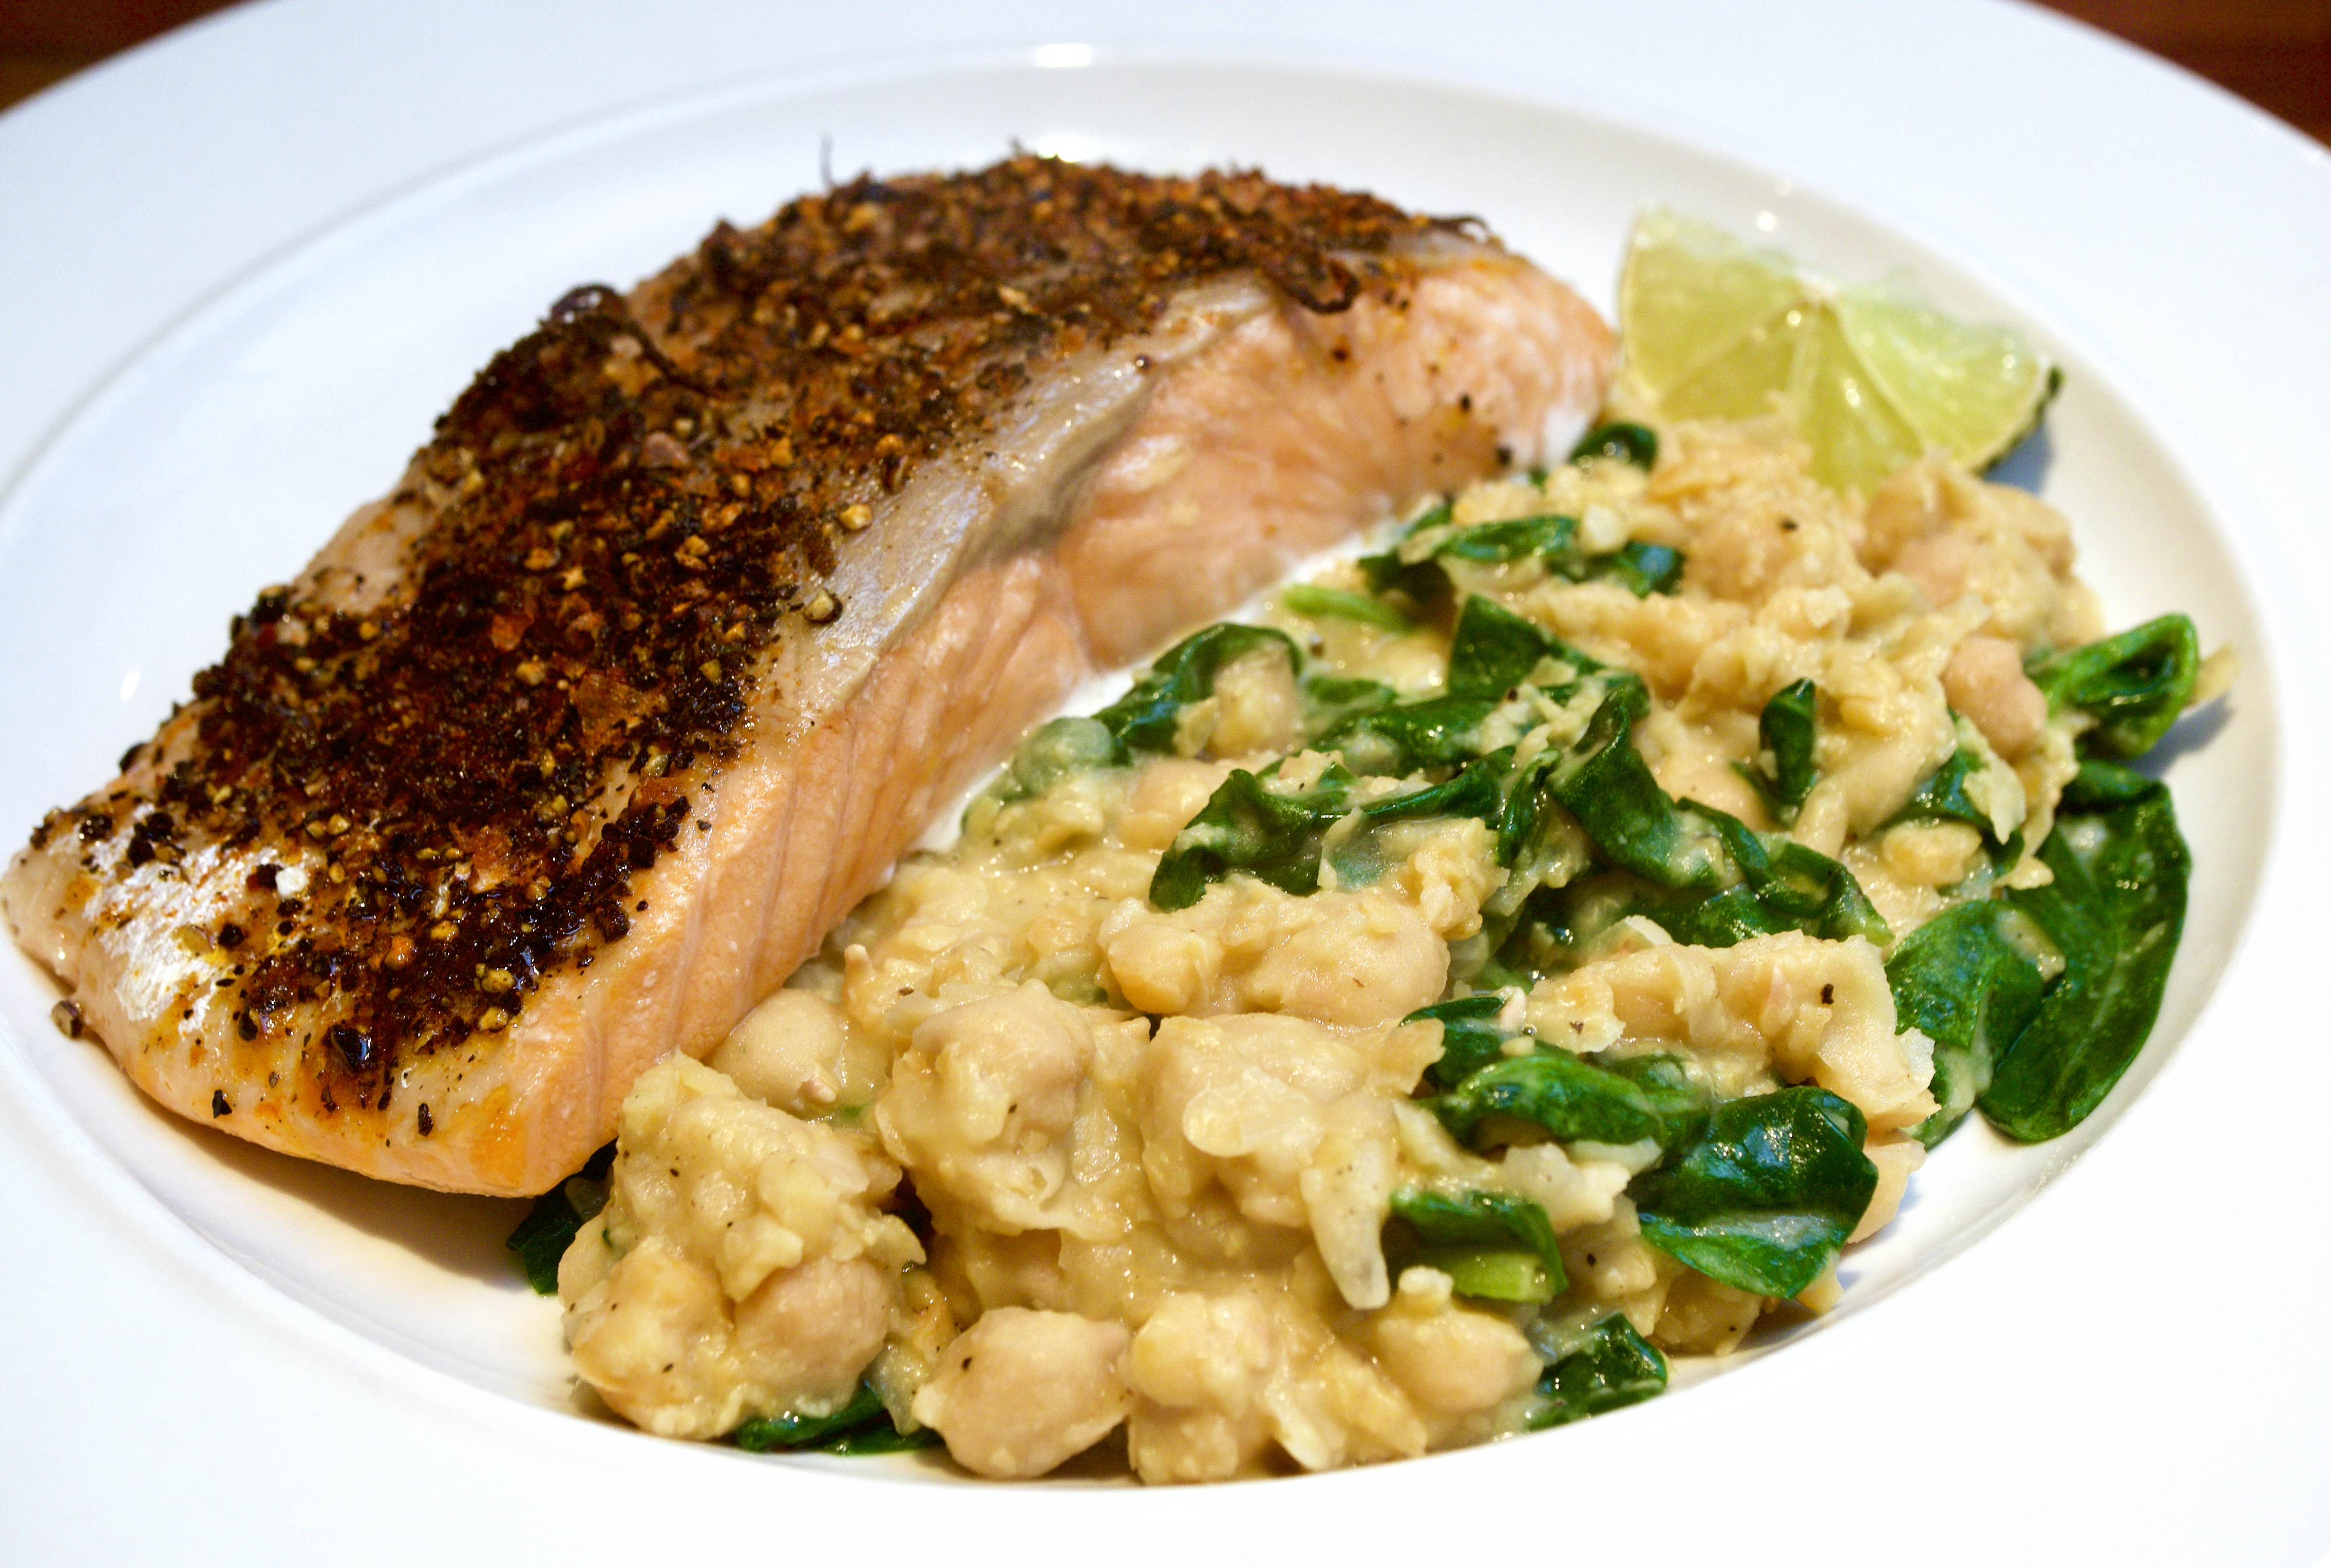 Pepper crusted Salmon with garlic chickpeas